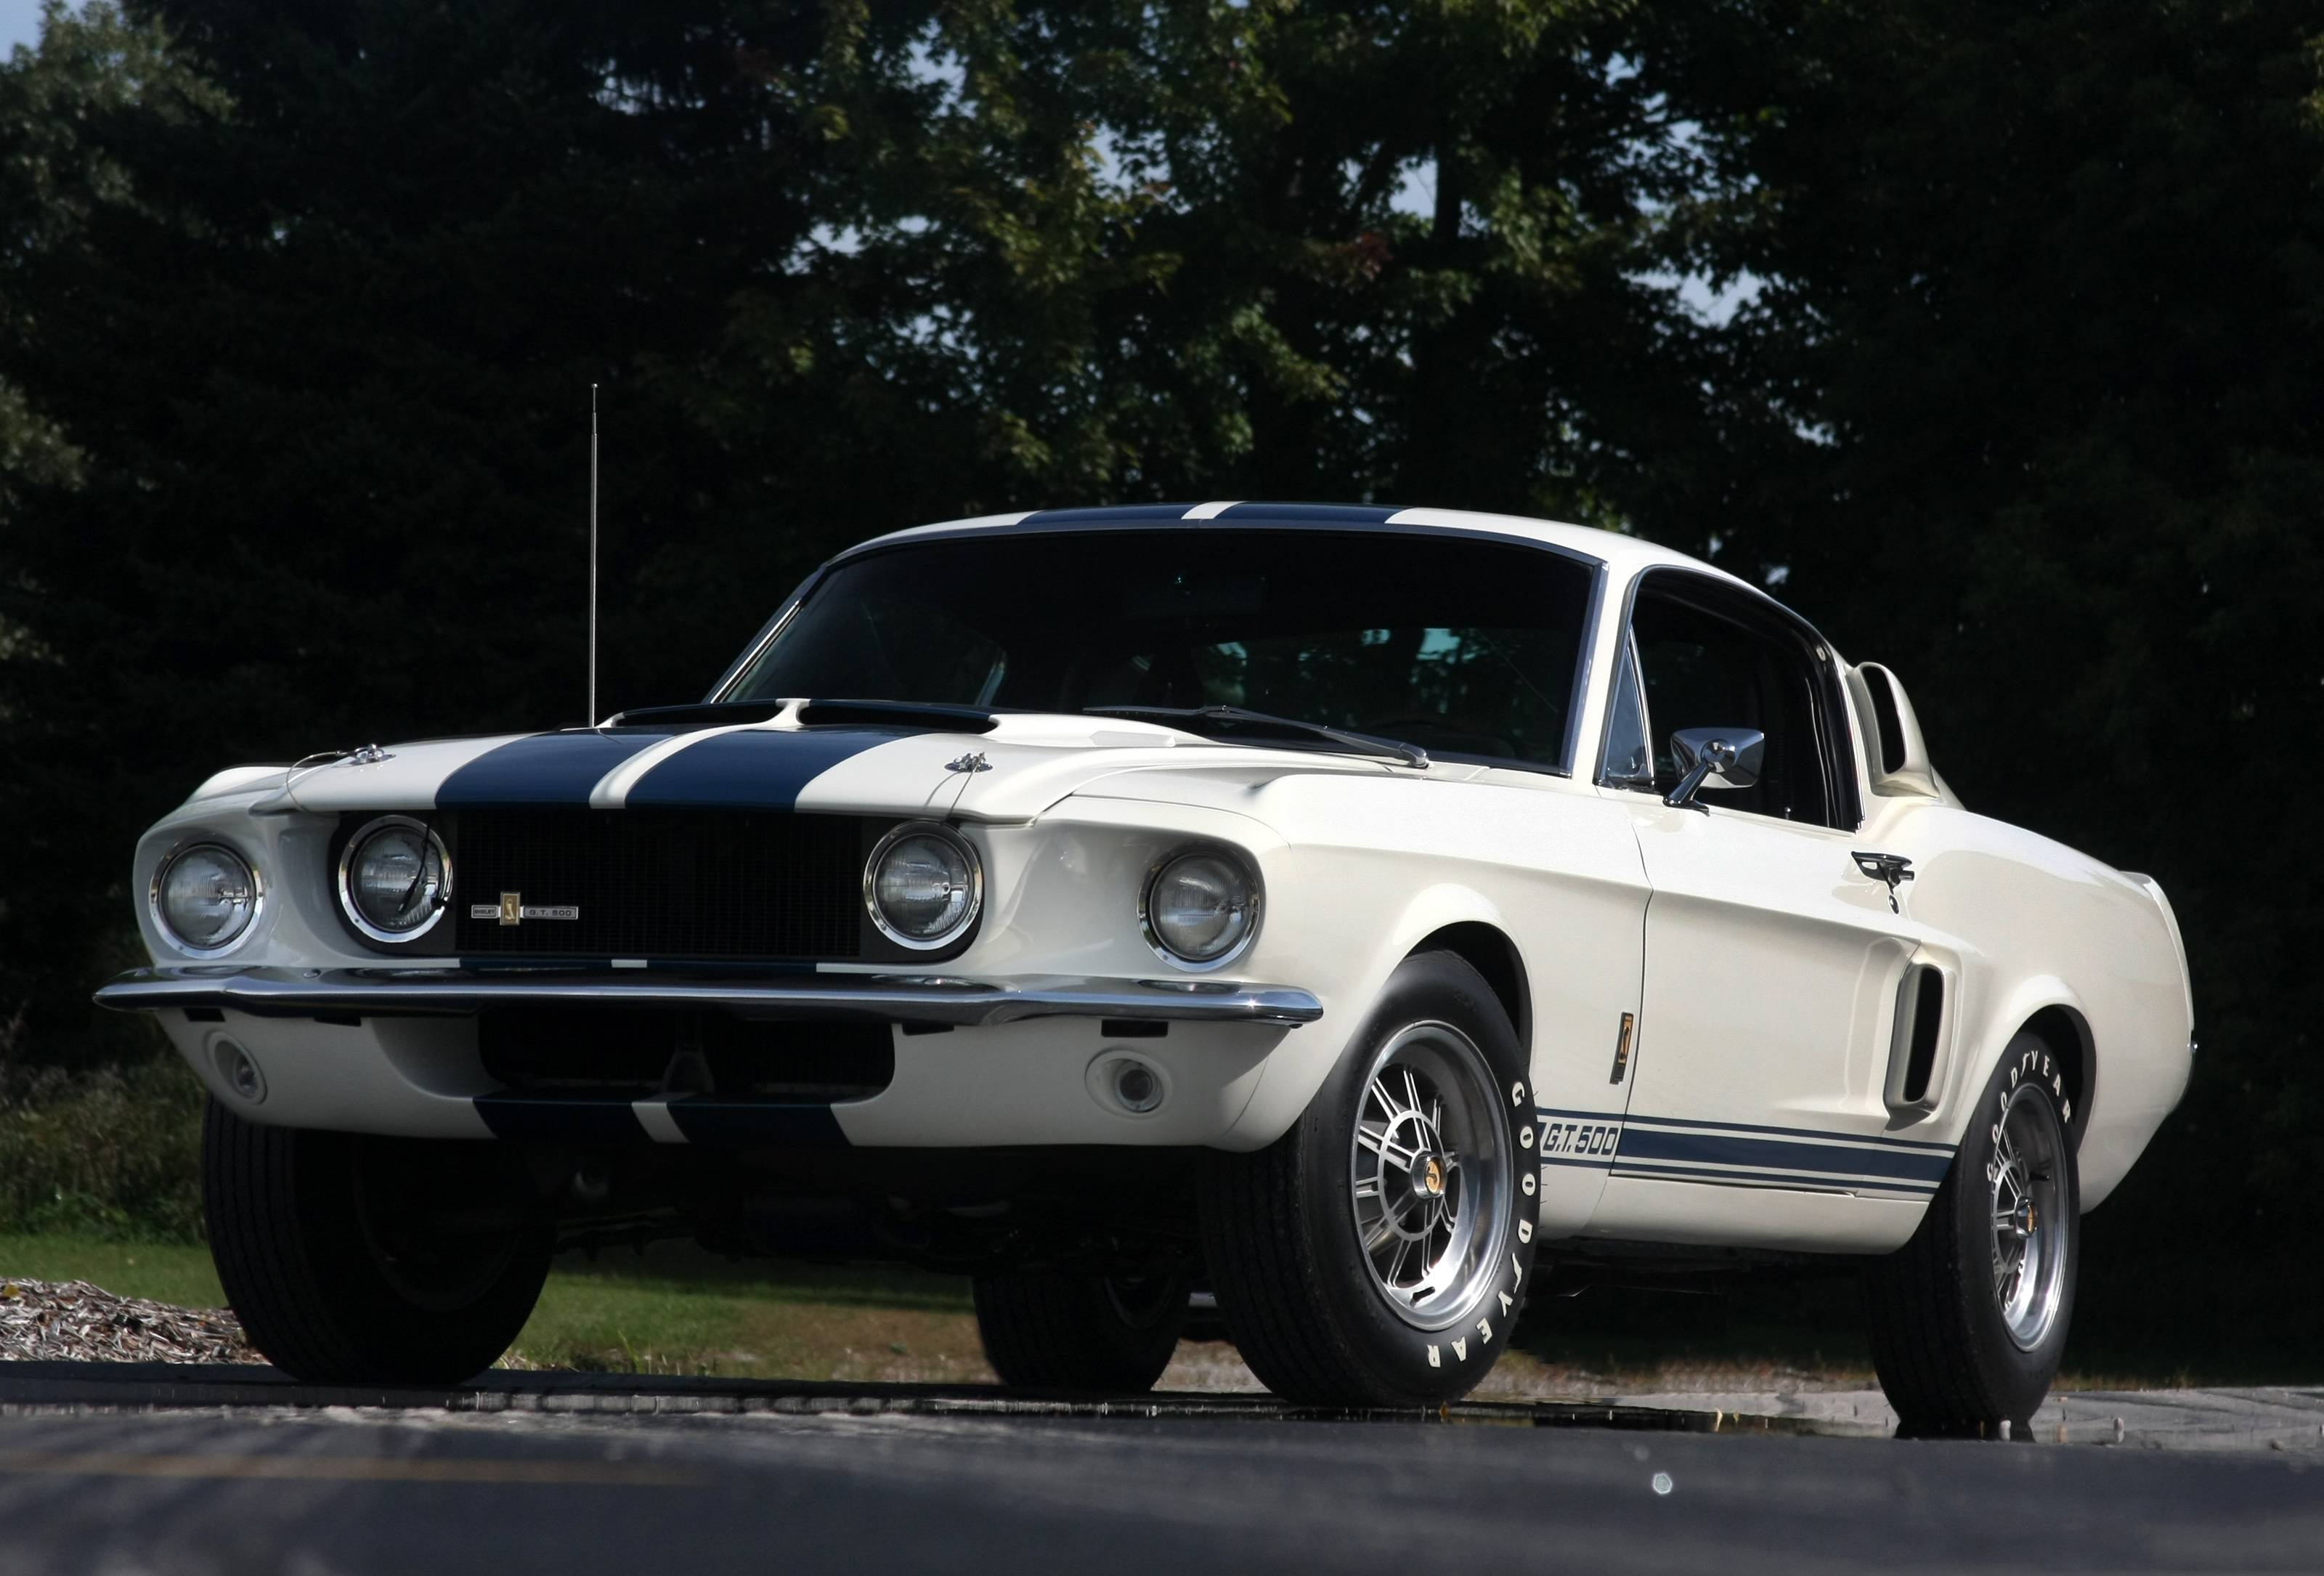 1967 Shelby GT500 & 2010 Shelby GT500 Patriot Edition